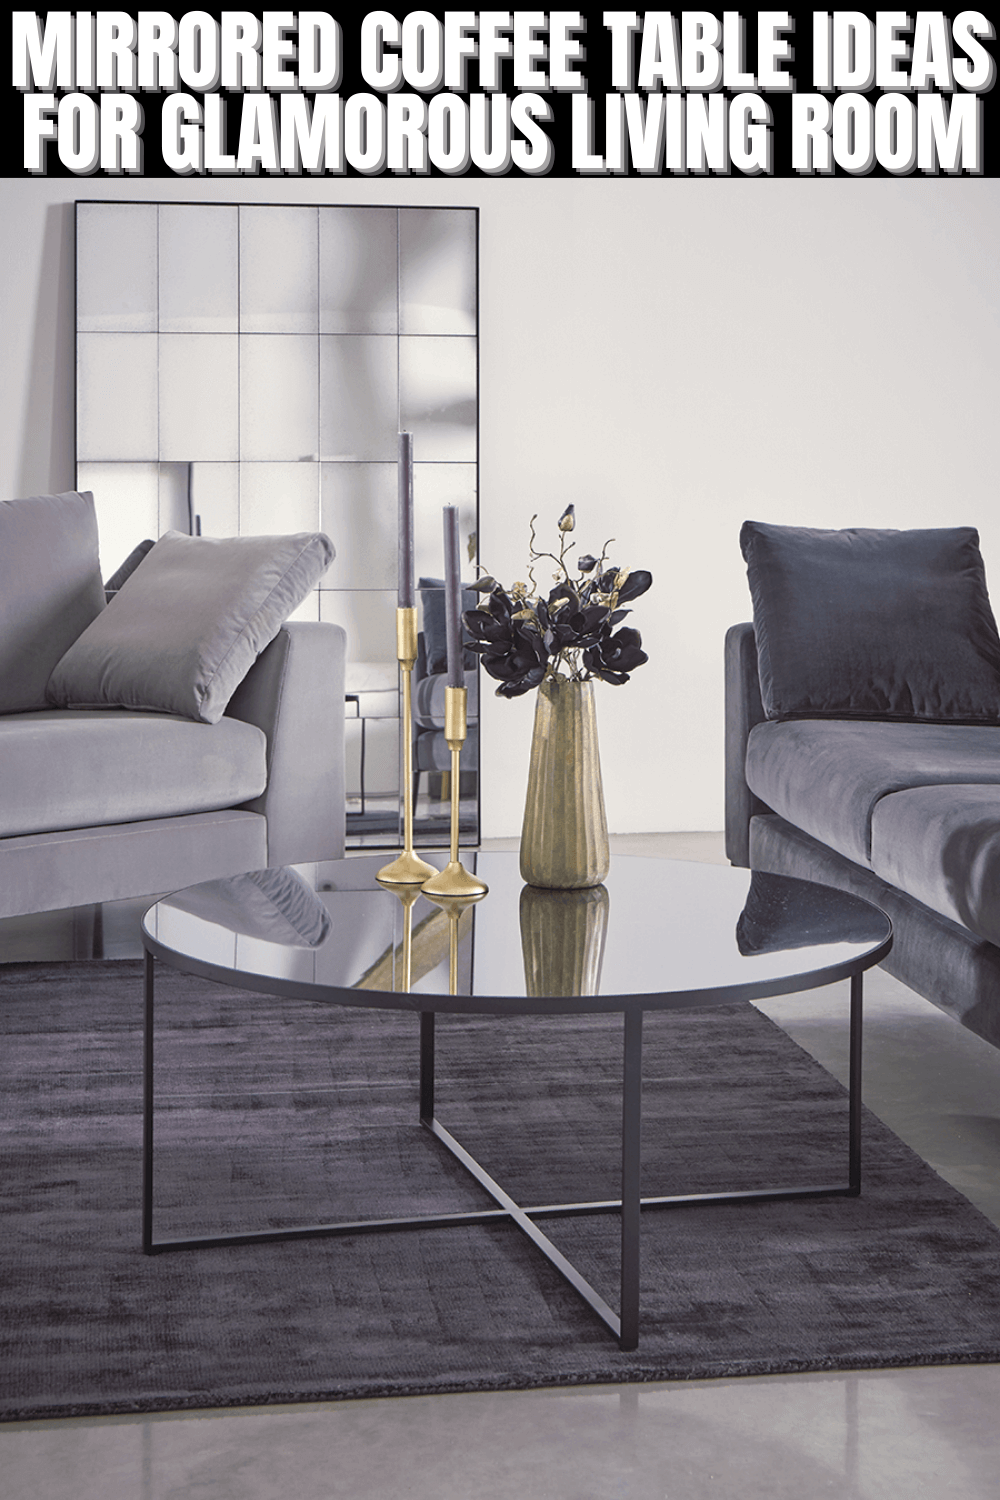 MIRRORED COFFEE TABLE IDEAS FOR GLAMOROUS LIVING ROOM